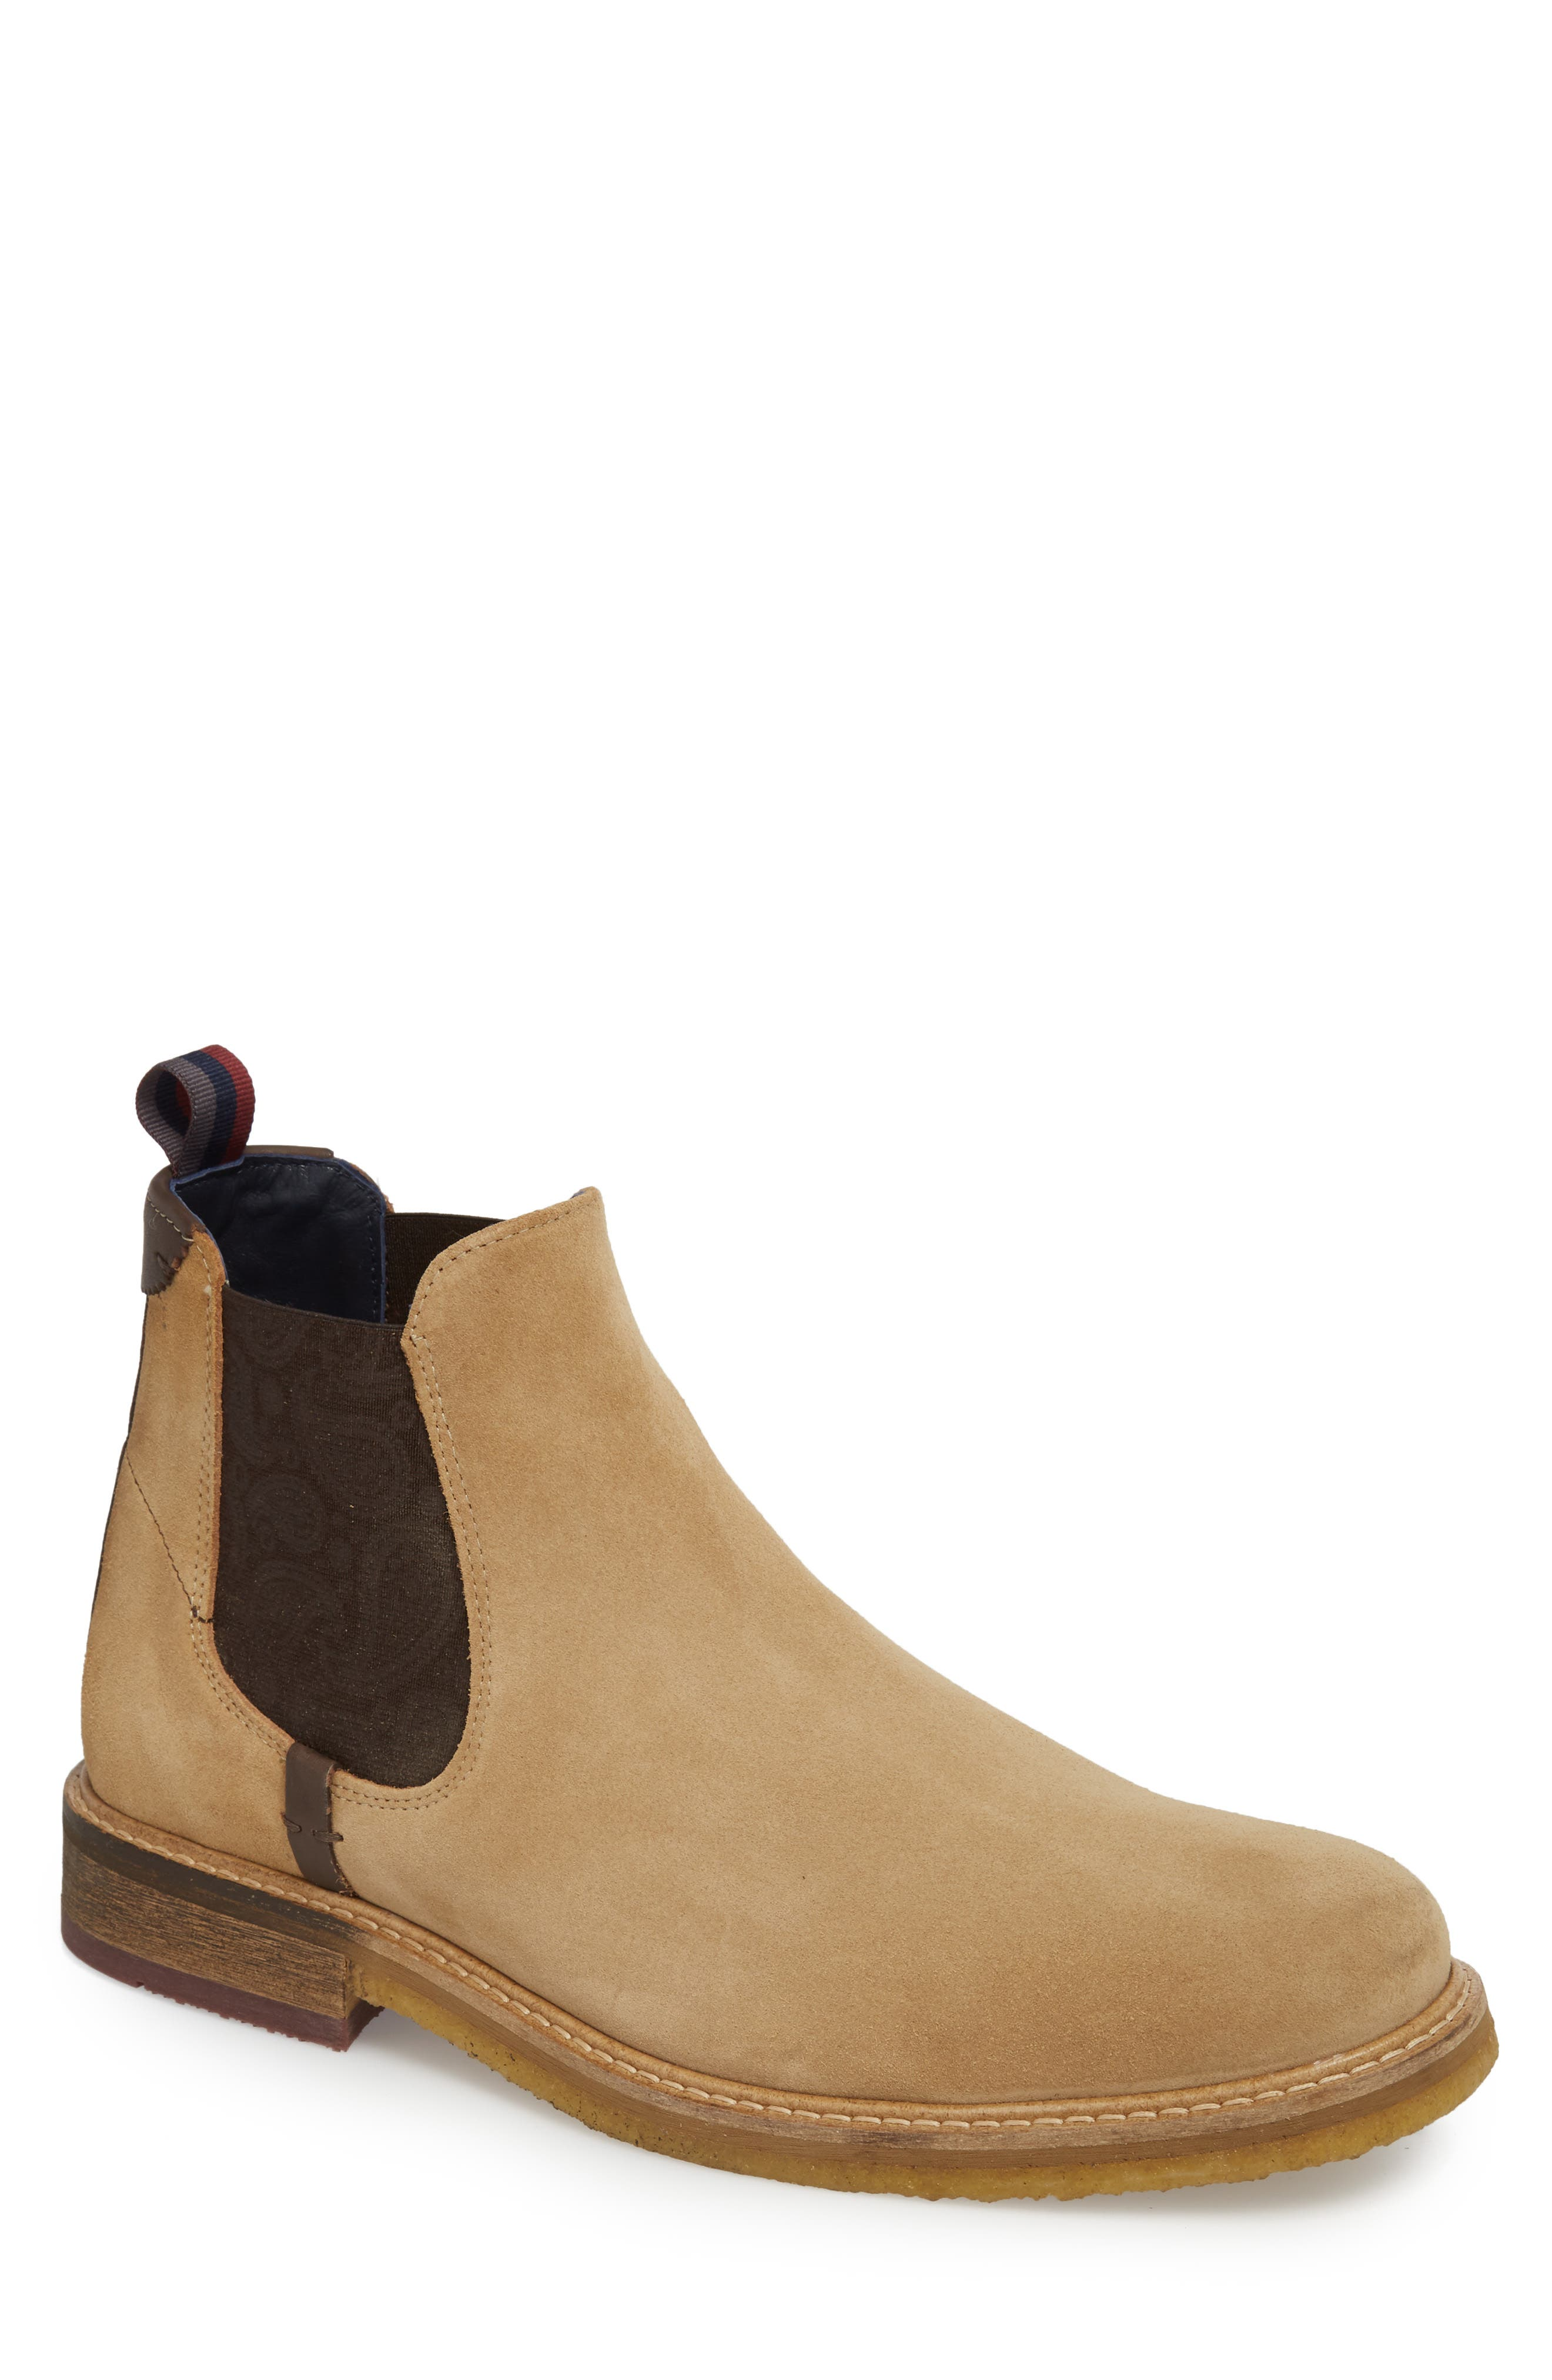 Bronzo Chelsea Boot,                         Main,                         color, Sand Suede